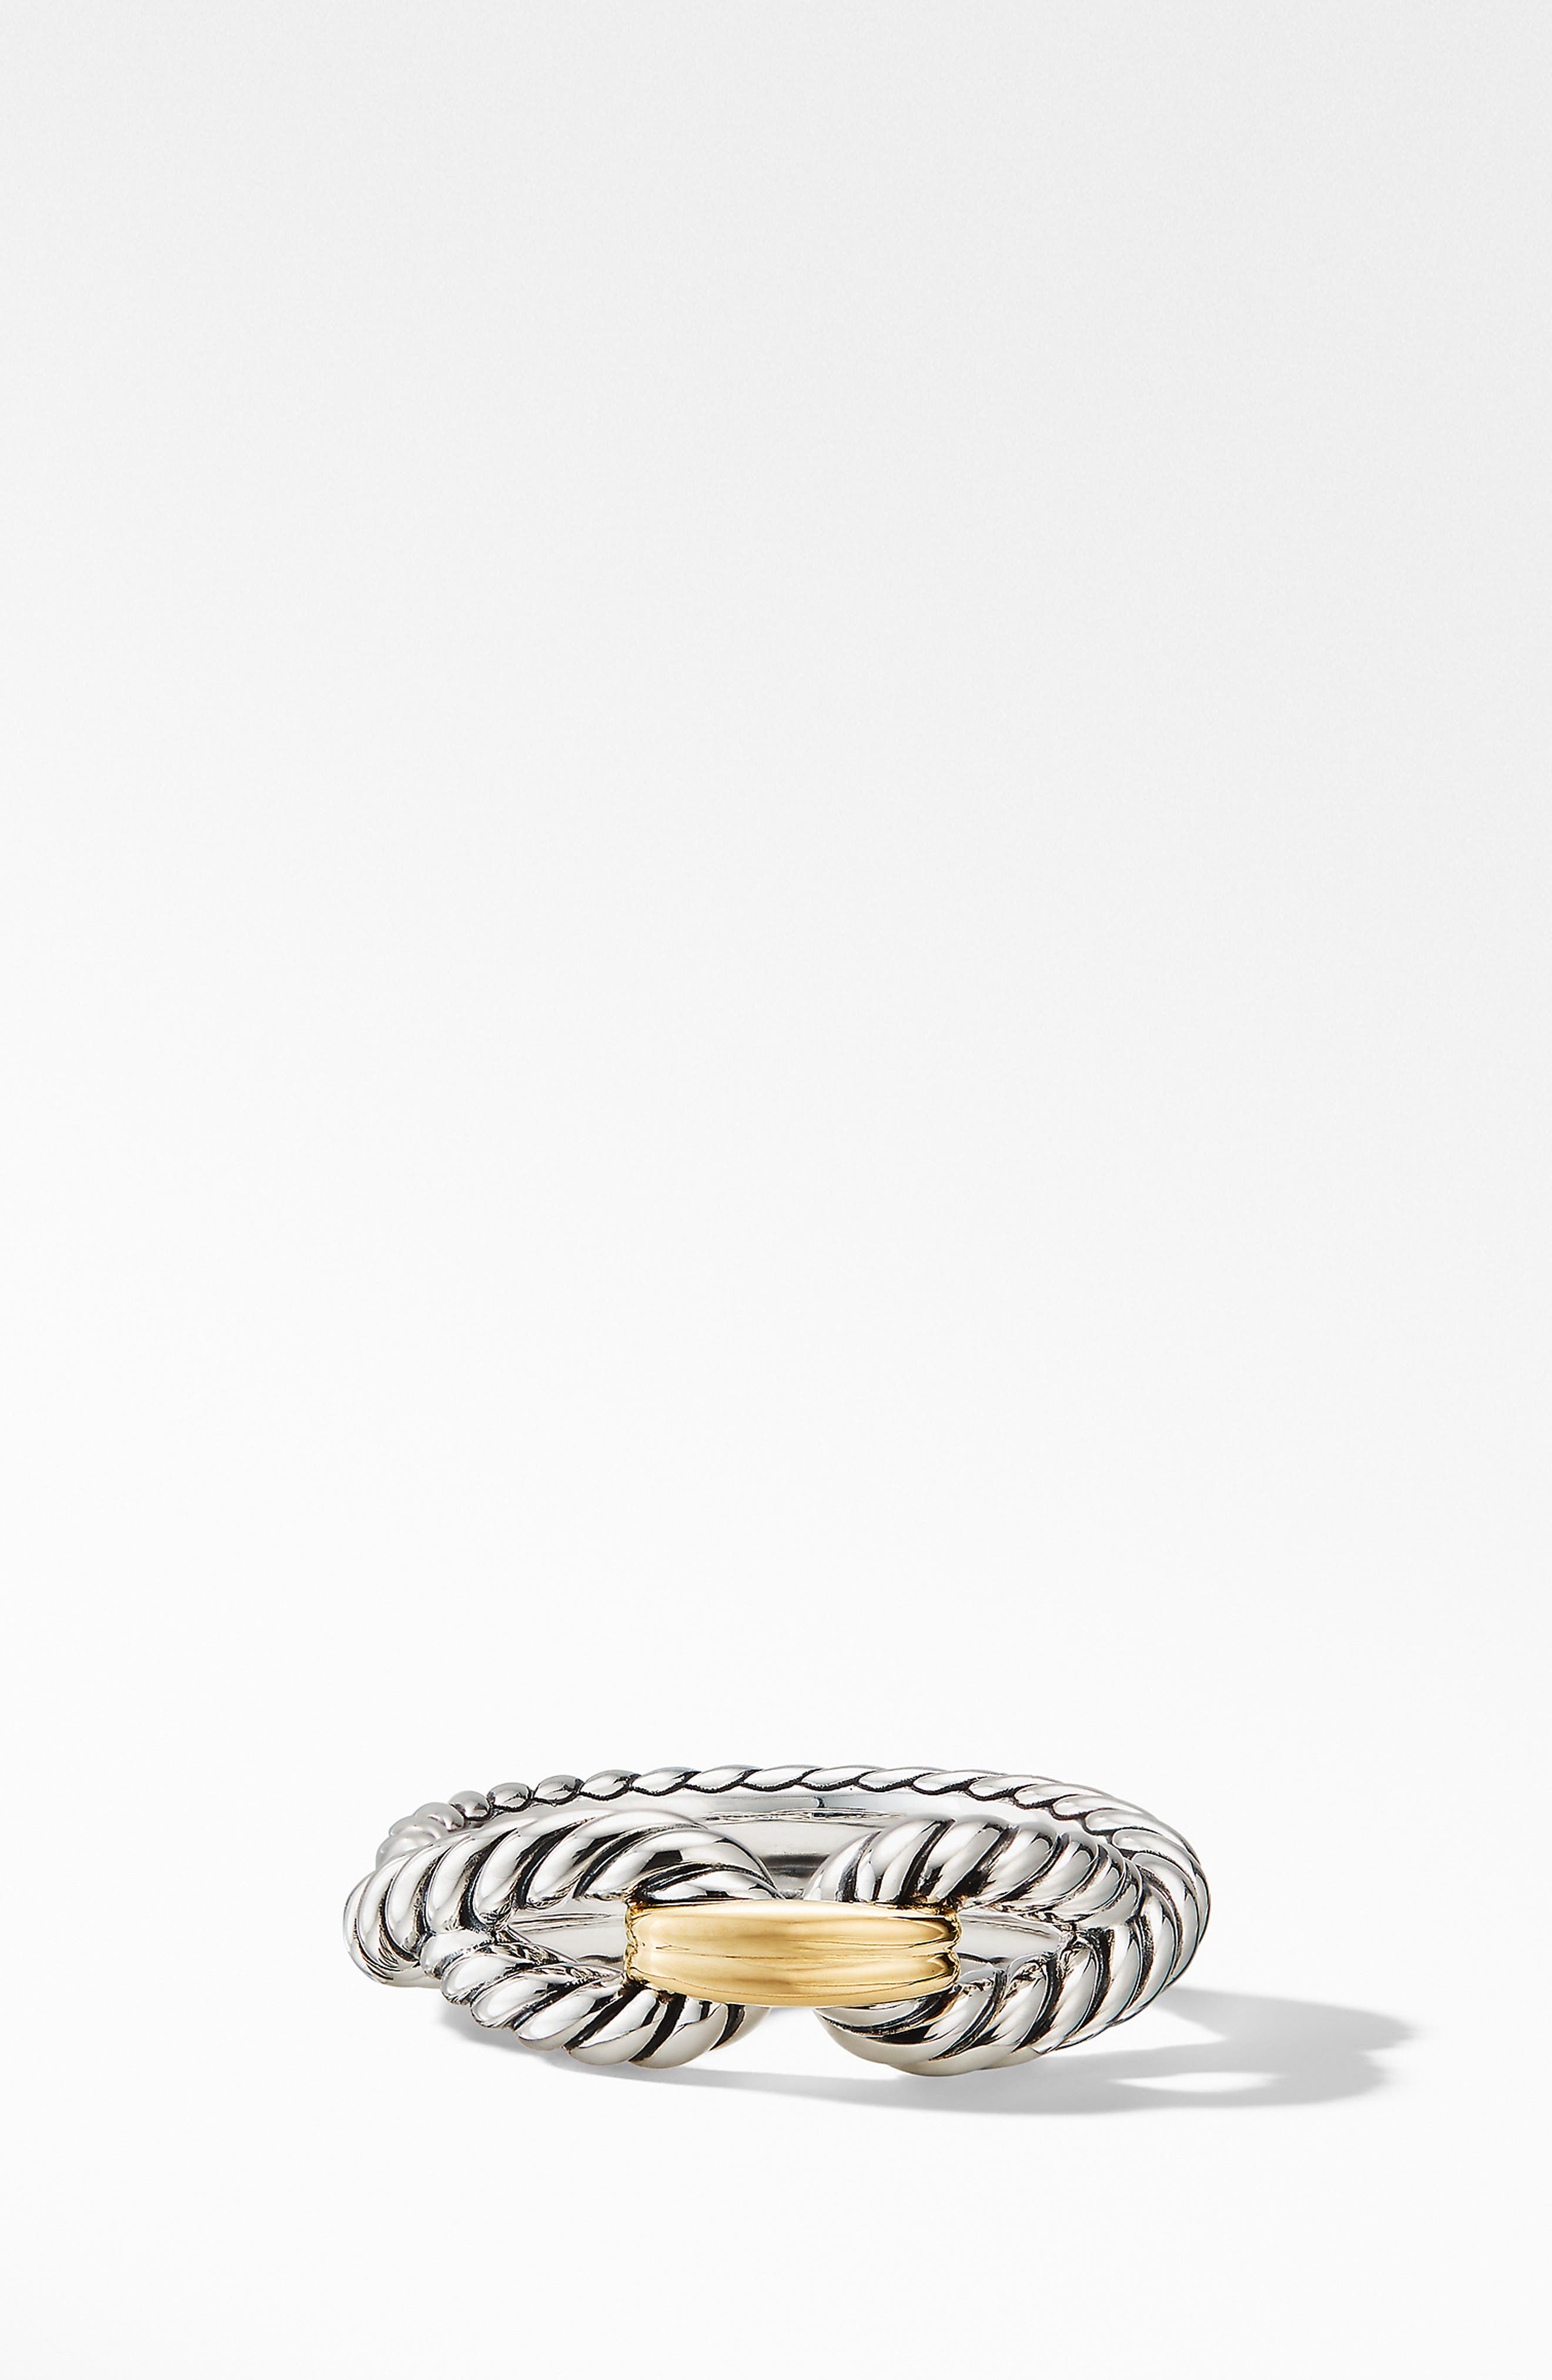 Cable Loop Ring with 18K Gold,                             Alternate thumbnail 2, color,                             YELLOW GOLD/ STERLING SILVER